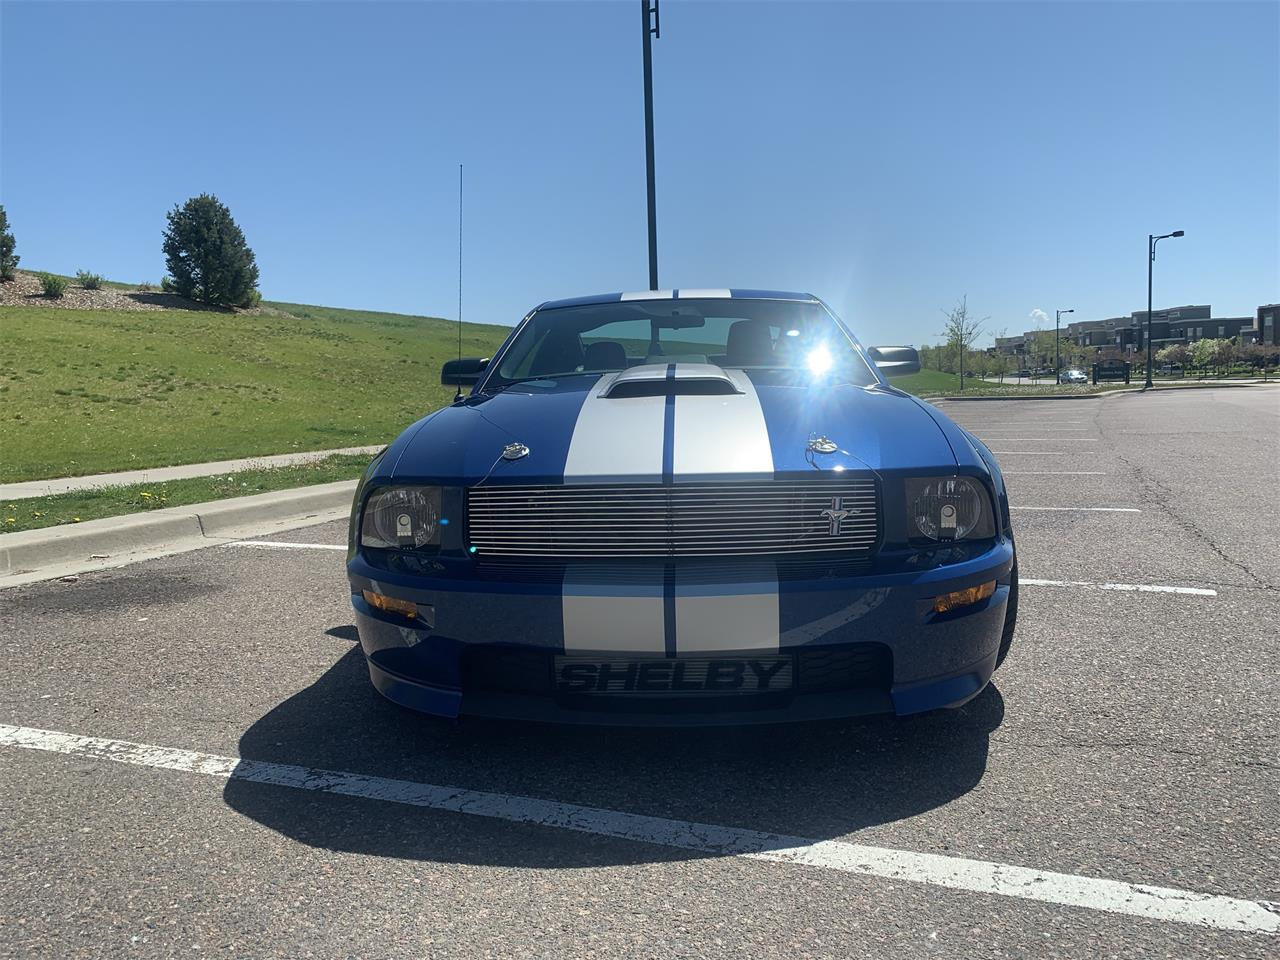 Large Picture of '08 Shelby Mustang located in Denver Colorado - $50,000.00 Offered by a Private Seller - P3GN